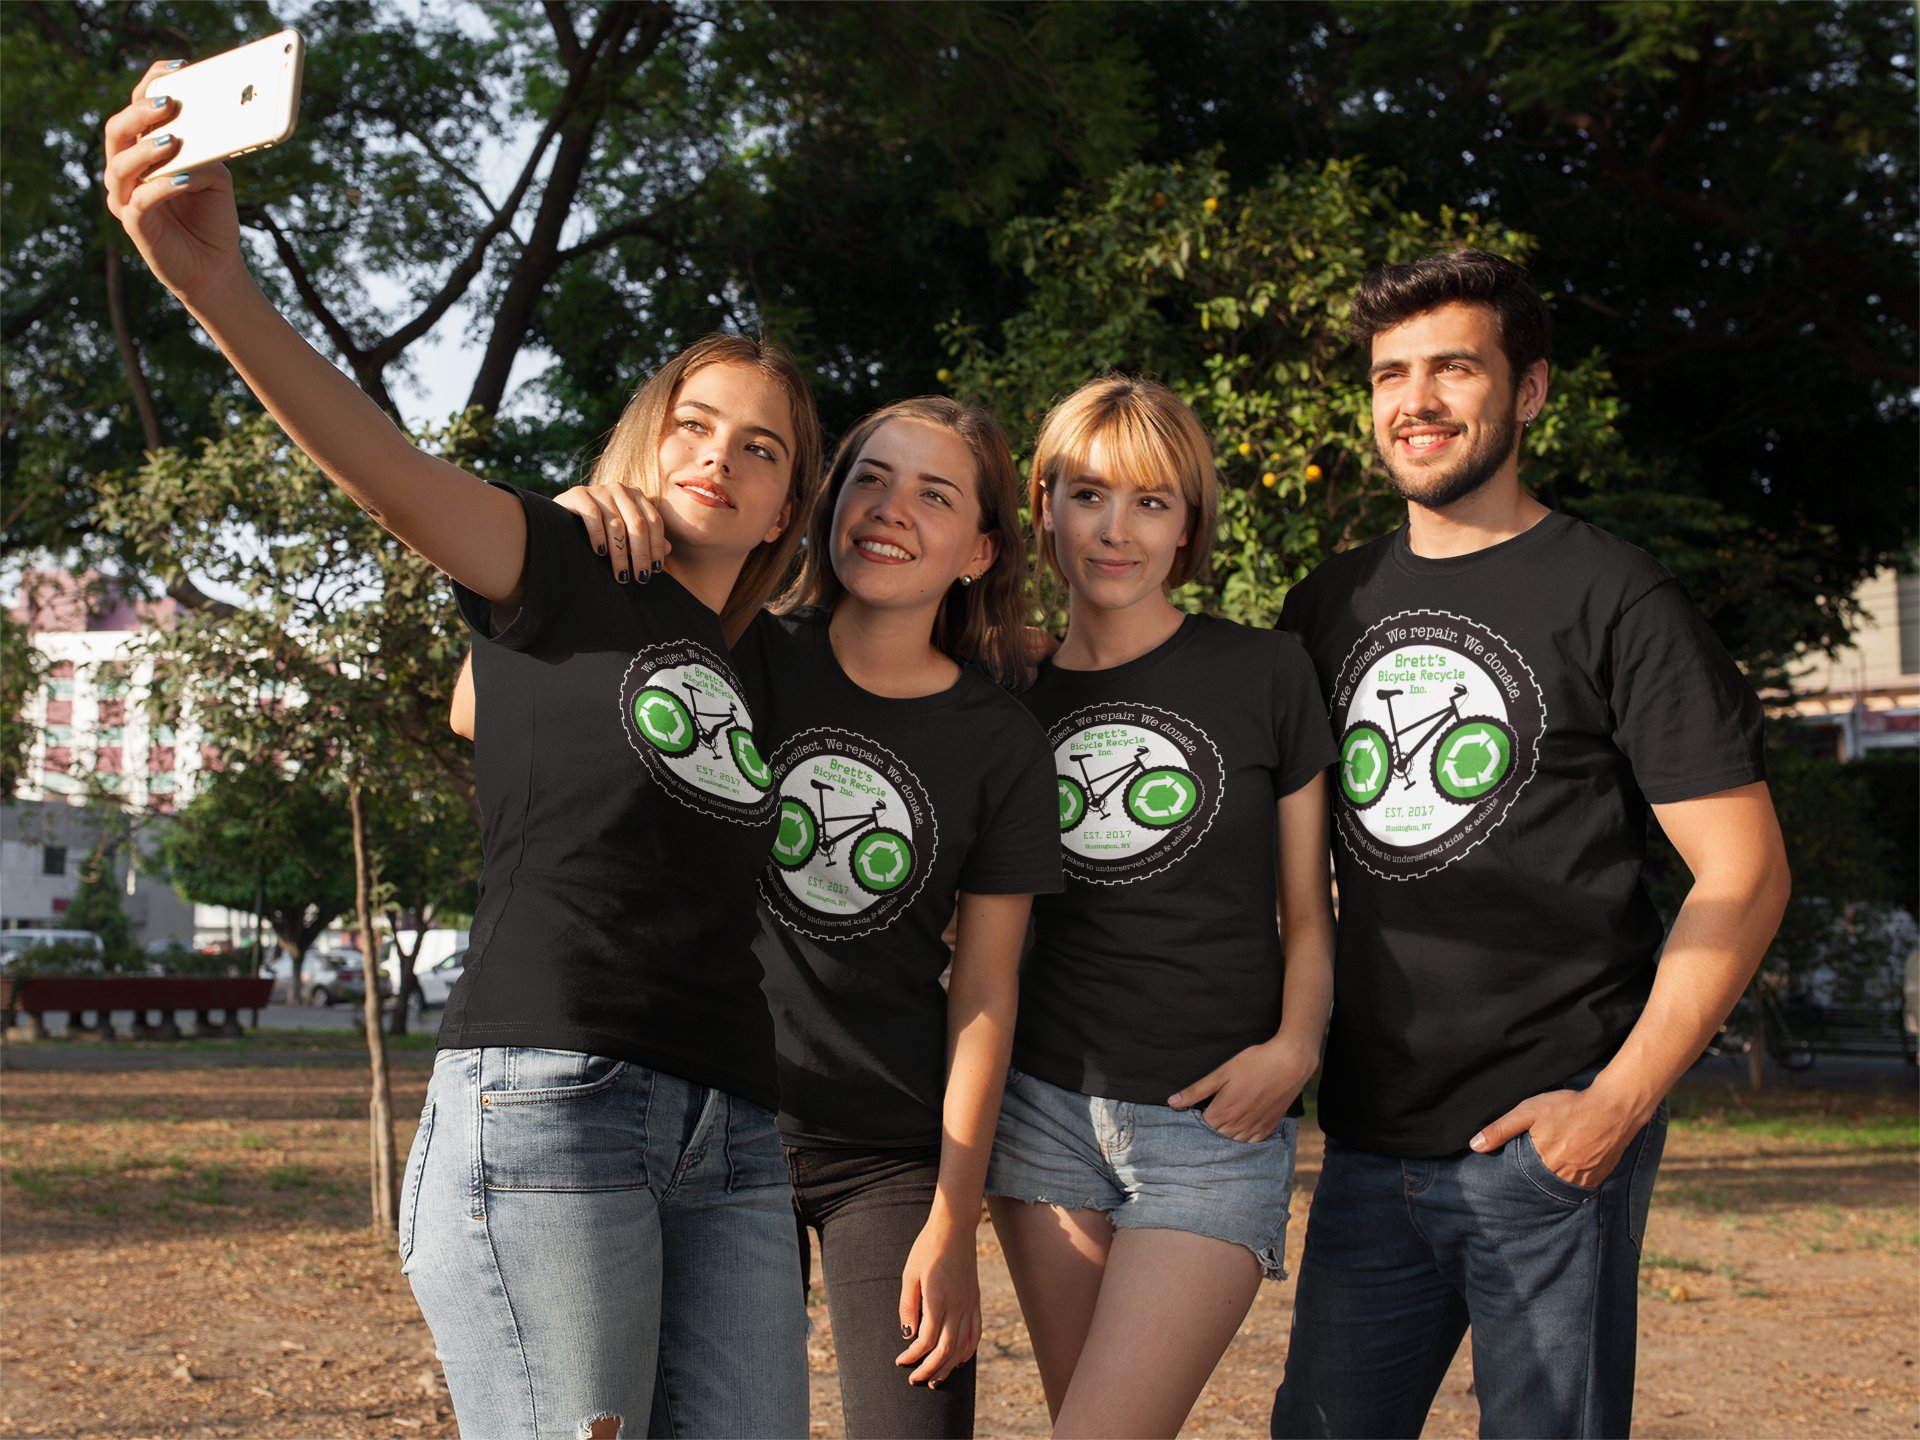 group-of-four-friends-taking-a-selfie-at-the-park-while-wearing-different-round-neck-tees-mockup-a16278.png